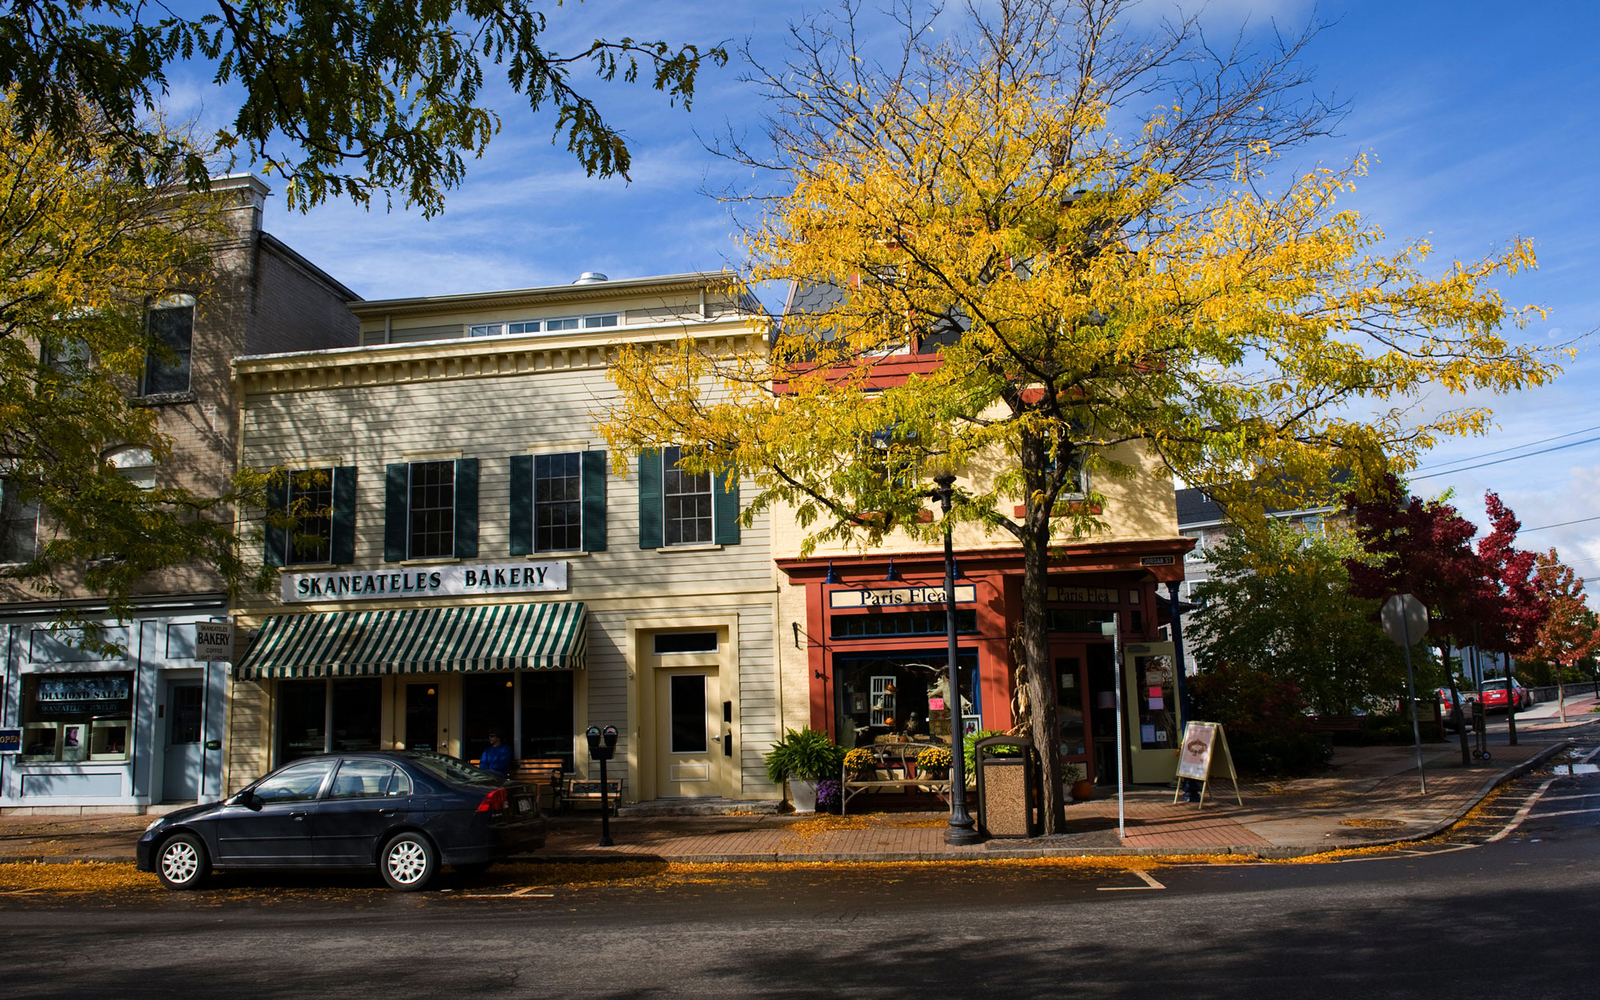 main street during autumn in Skaneateles, New York